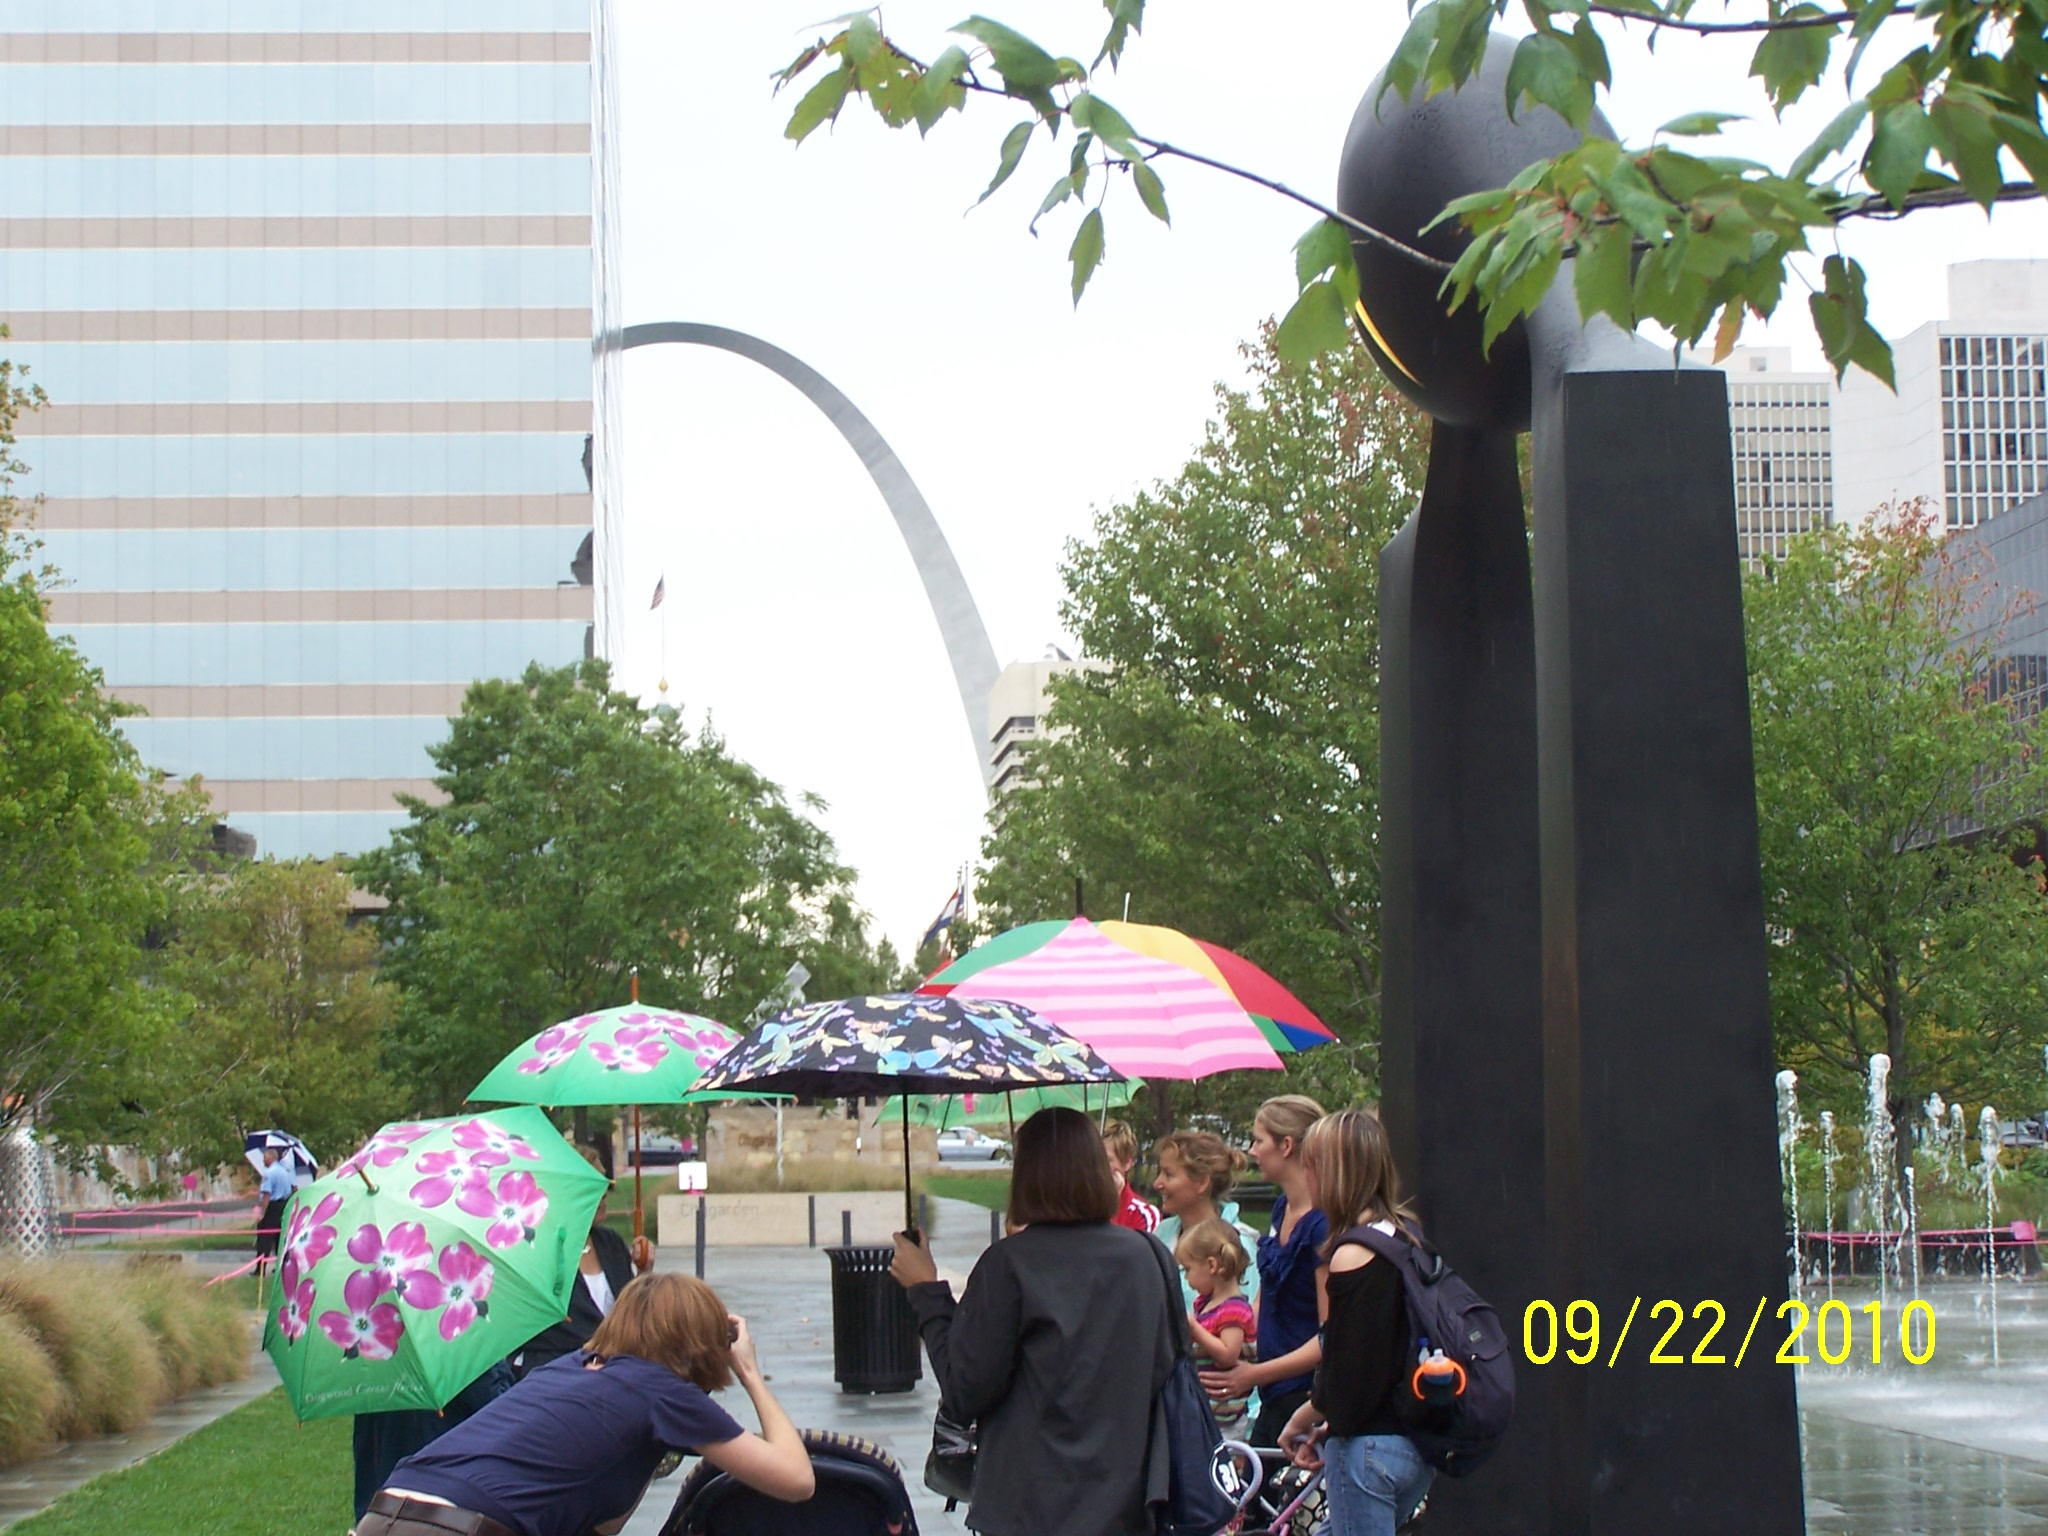 2010-09-22 Citygarden Rainbow Umbrella Arch